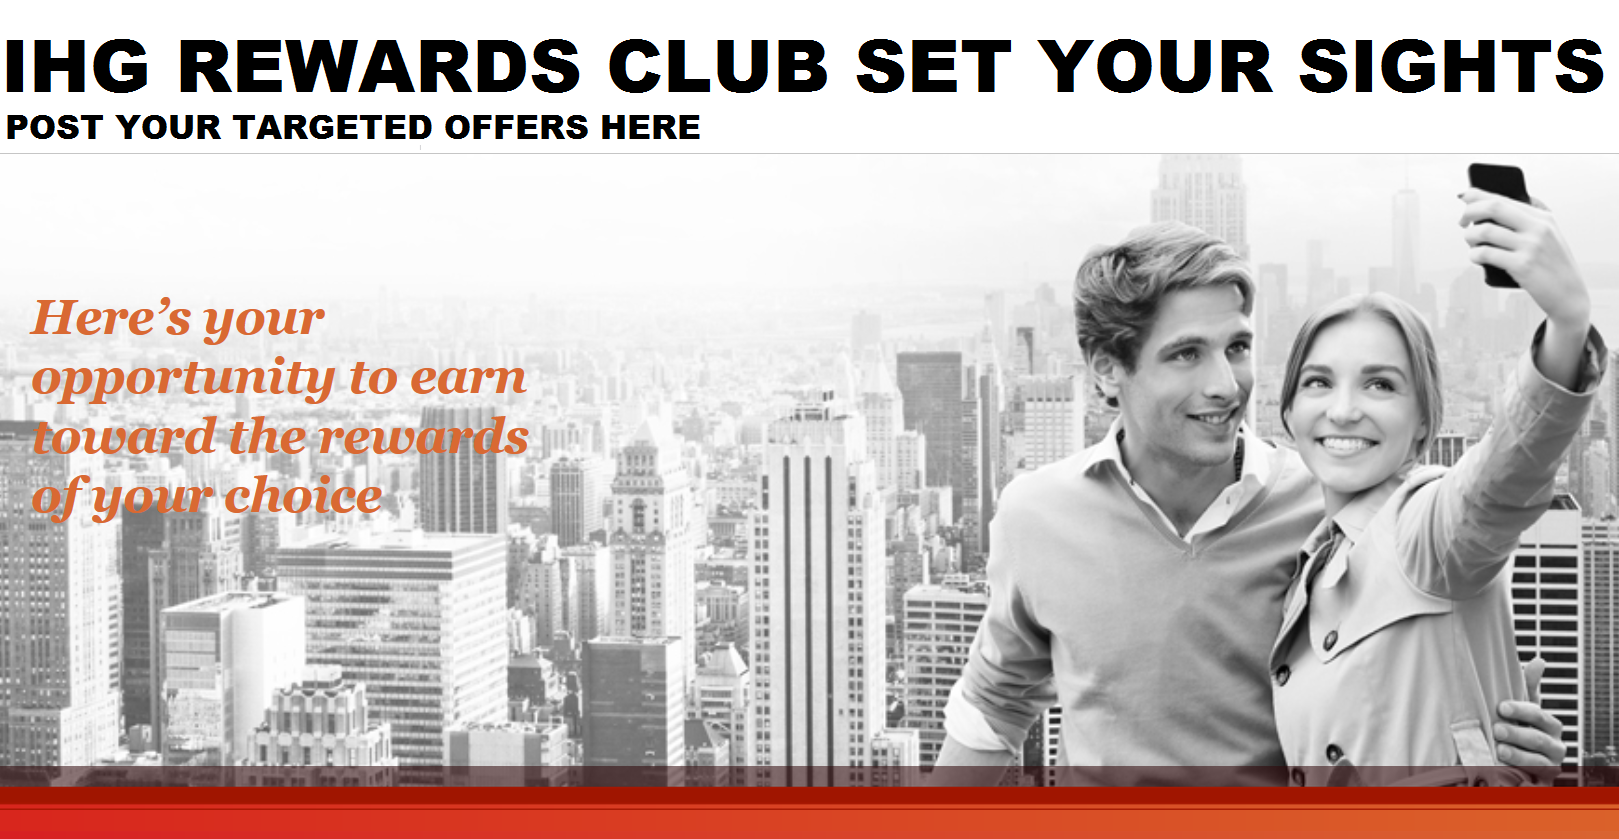 Ihg rewards club set your sights promotion base offer for new